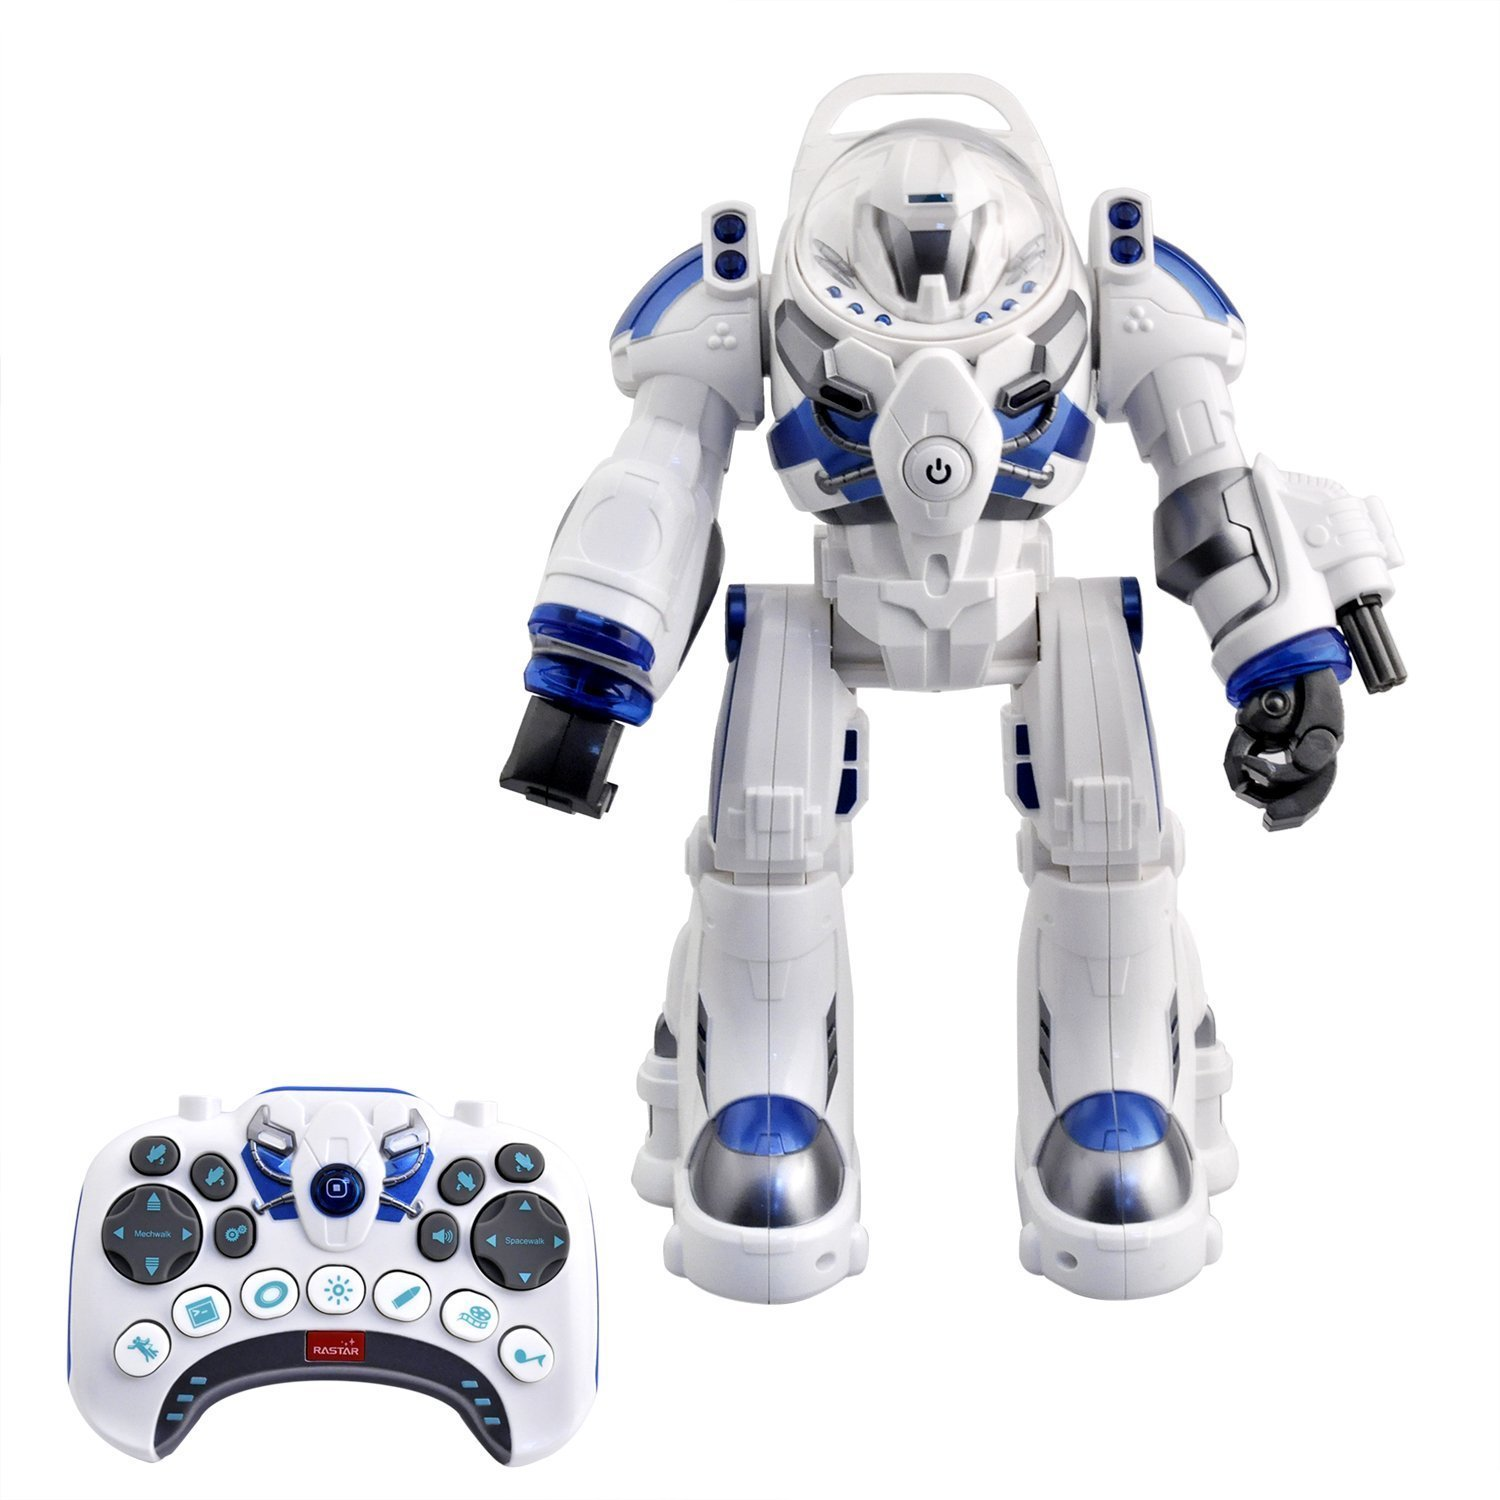 Spaceman RC Robot With Shoots Soft Rubber Missiles, Flashing Lights and Sound, Walking Talking and Dancing (White)